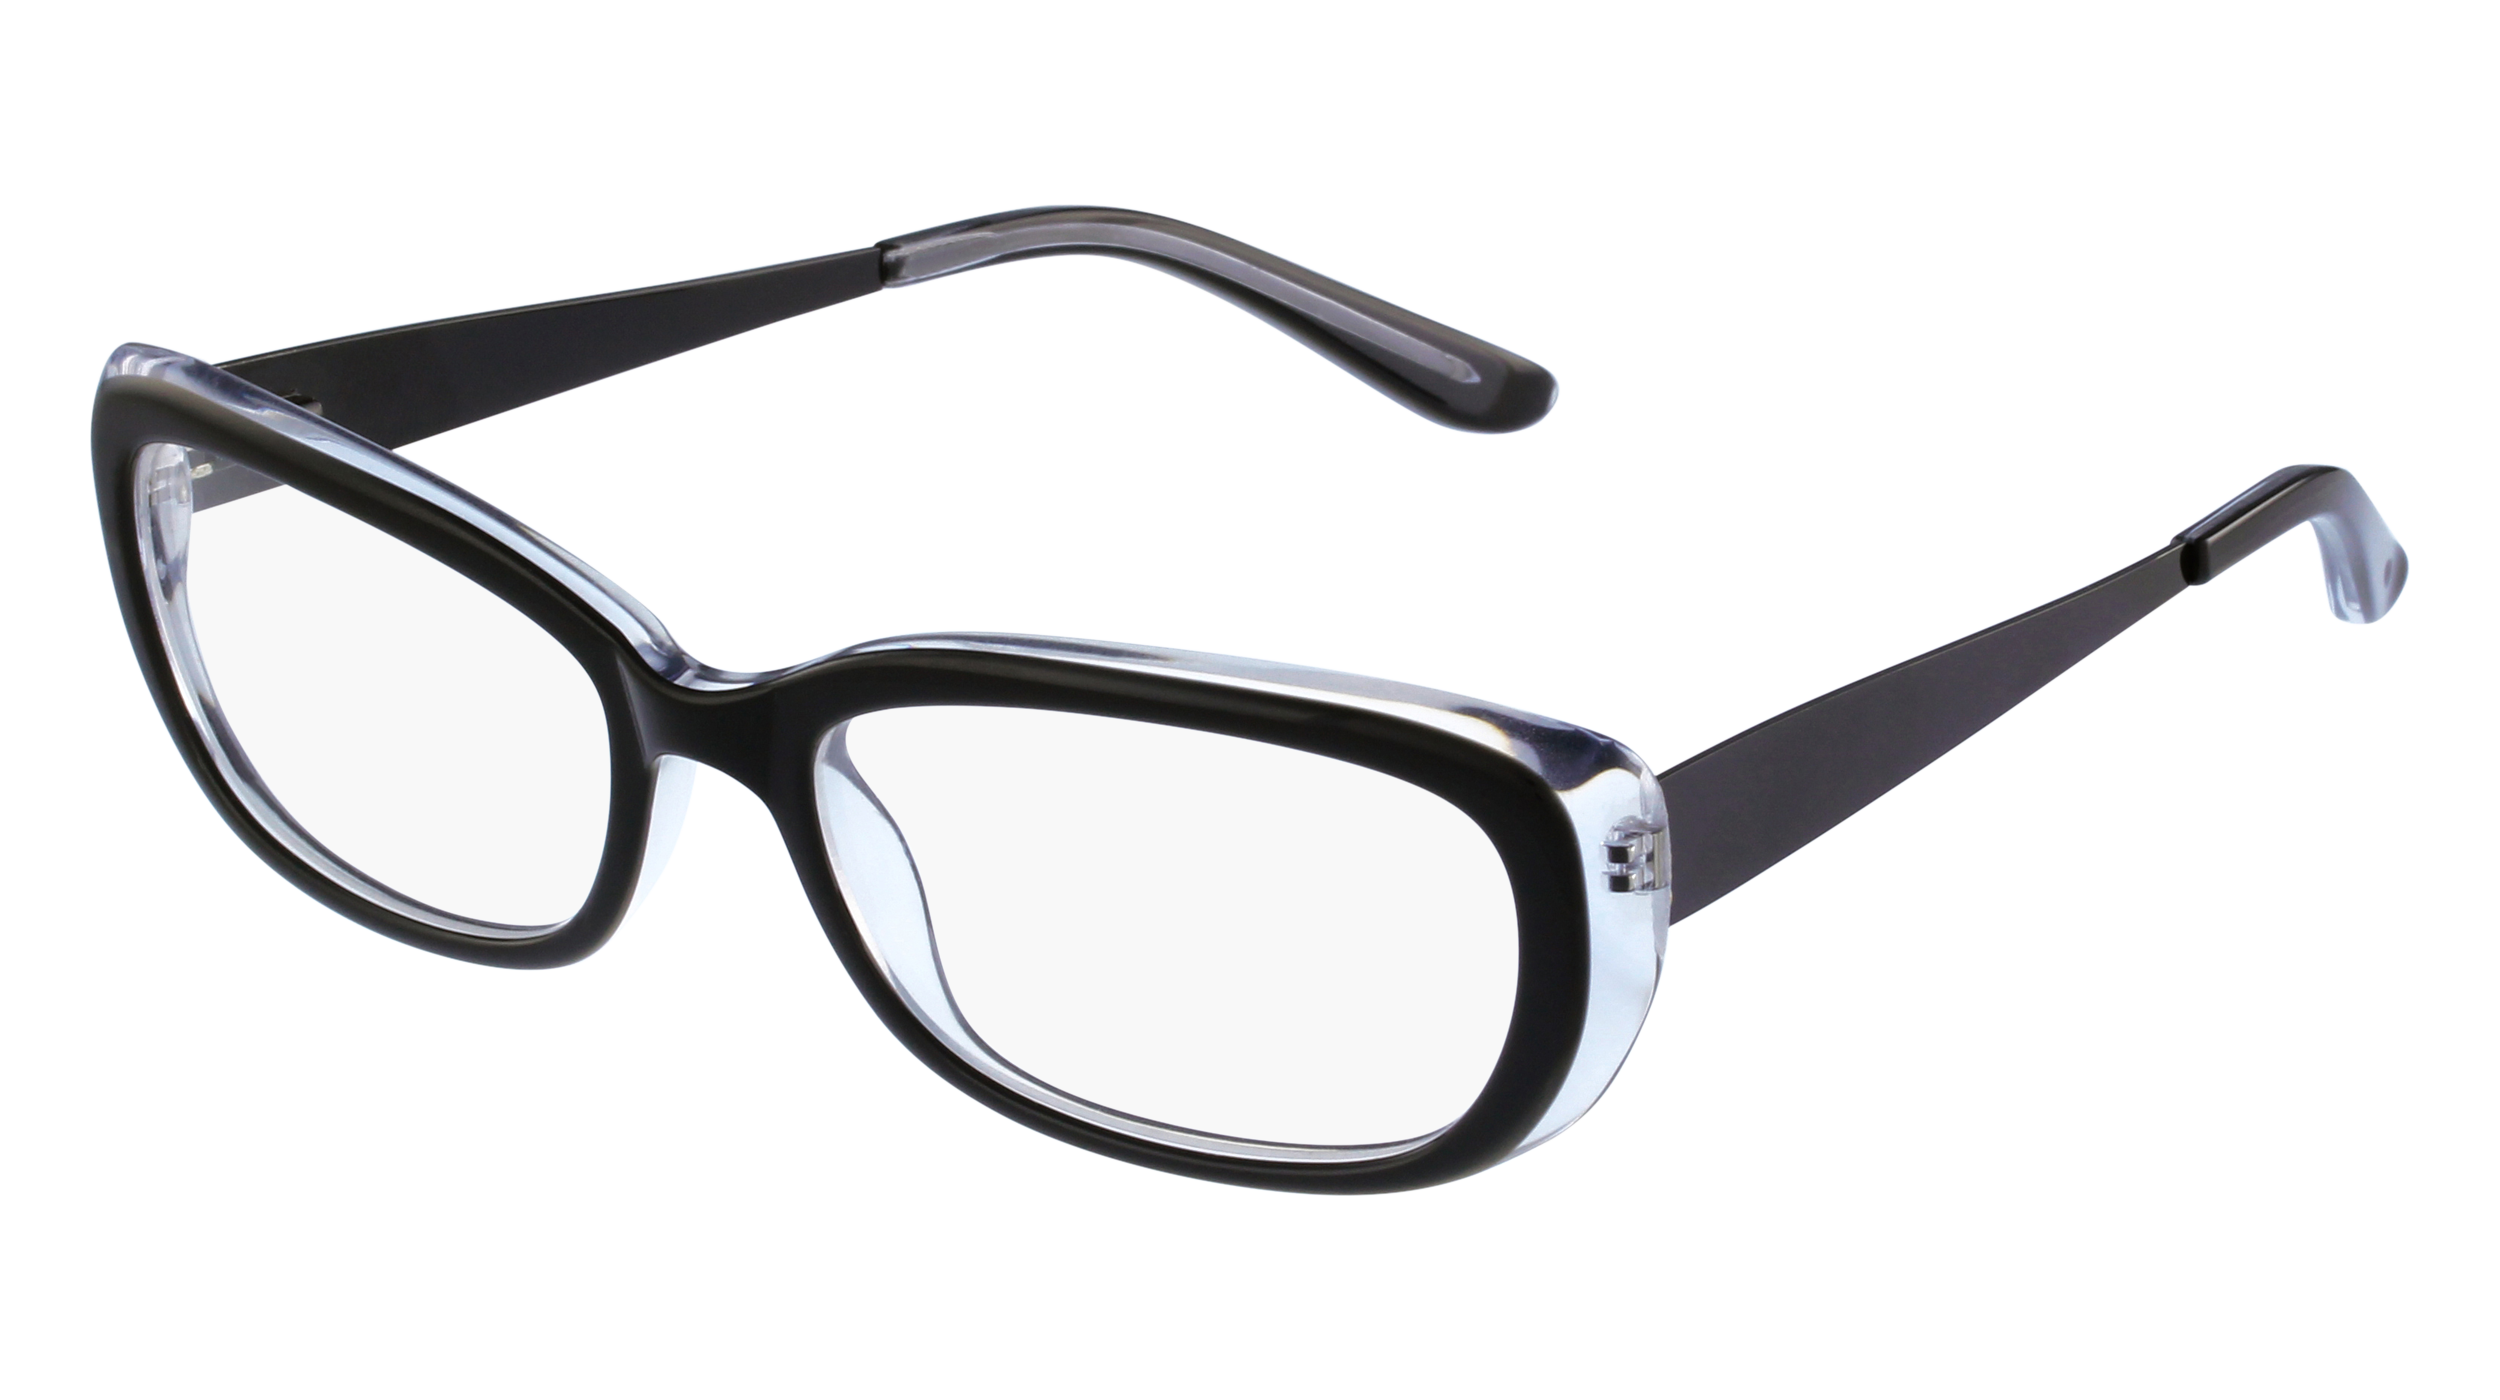 a n a eyeglasses for jcpenney optical jcpenney